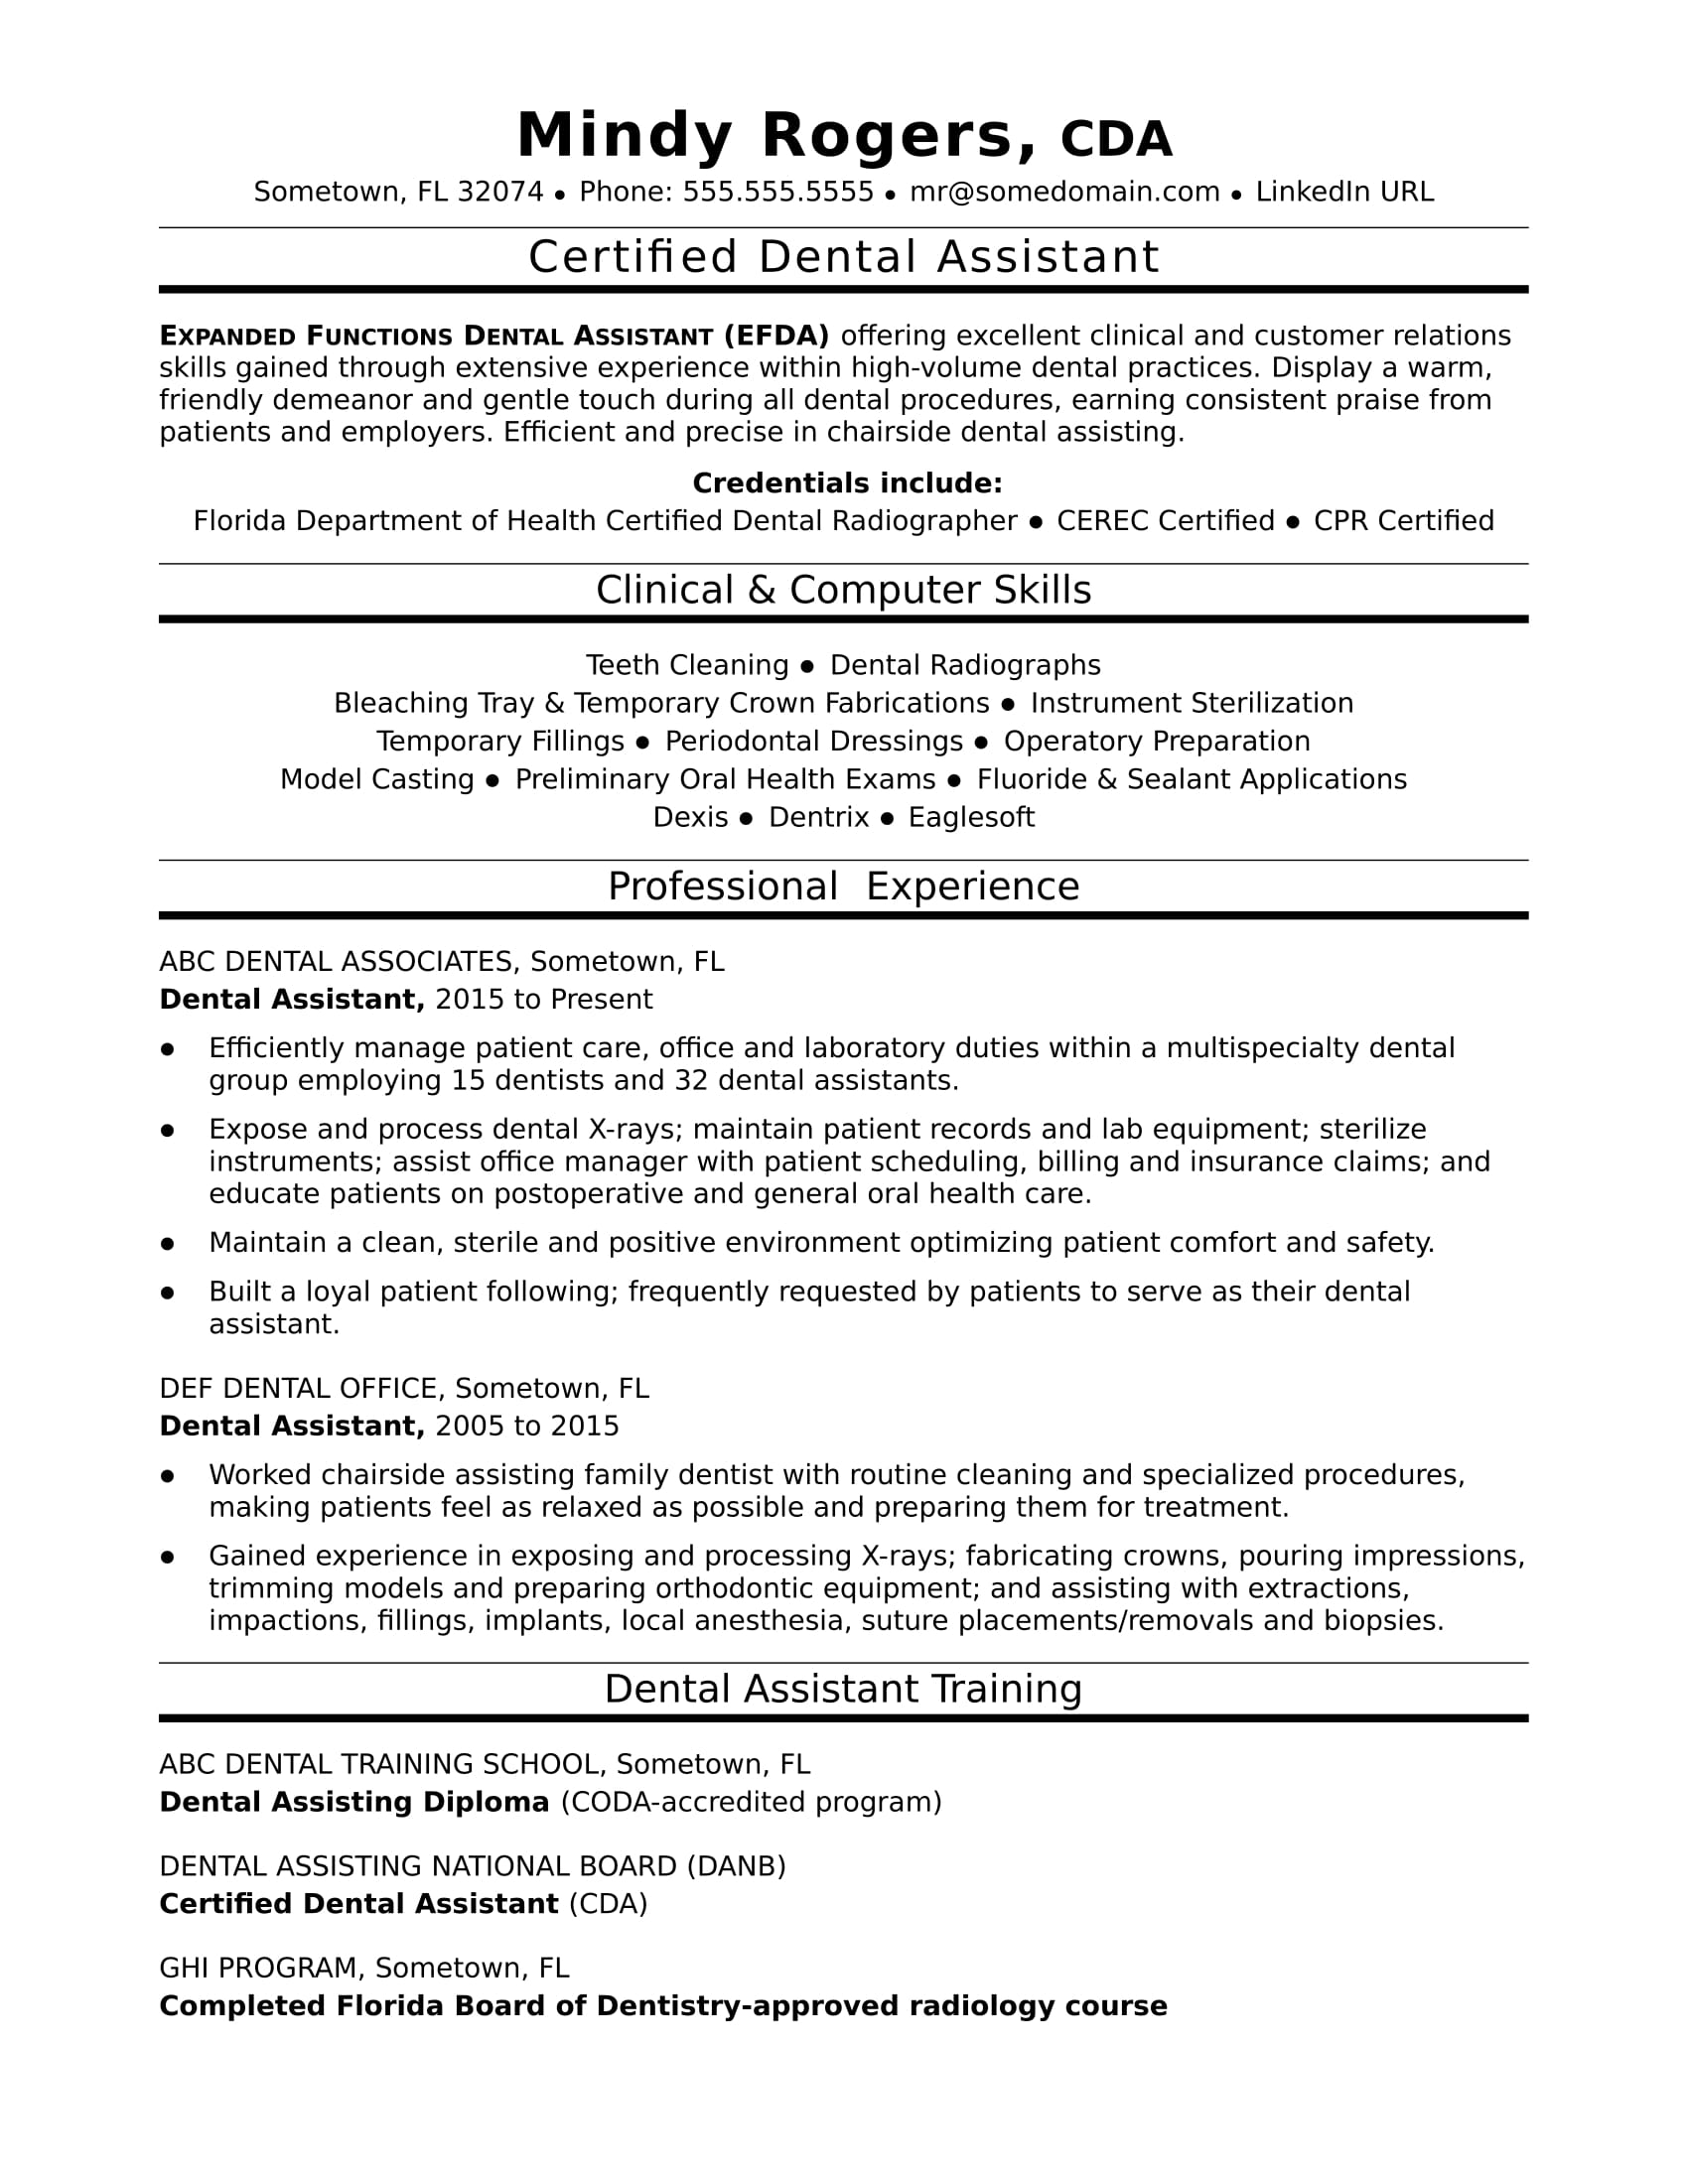 dental assistant resume sample - Dental Assistant Resume Samples